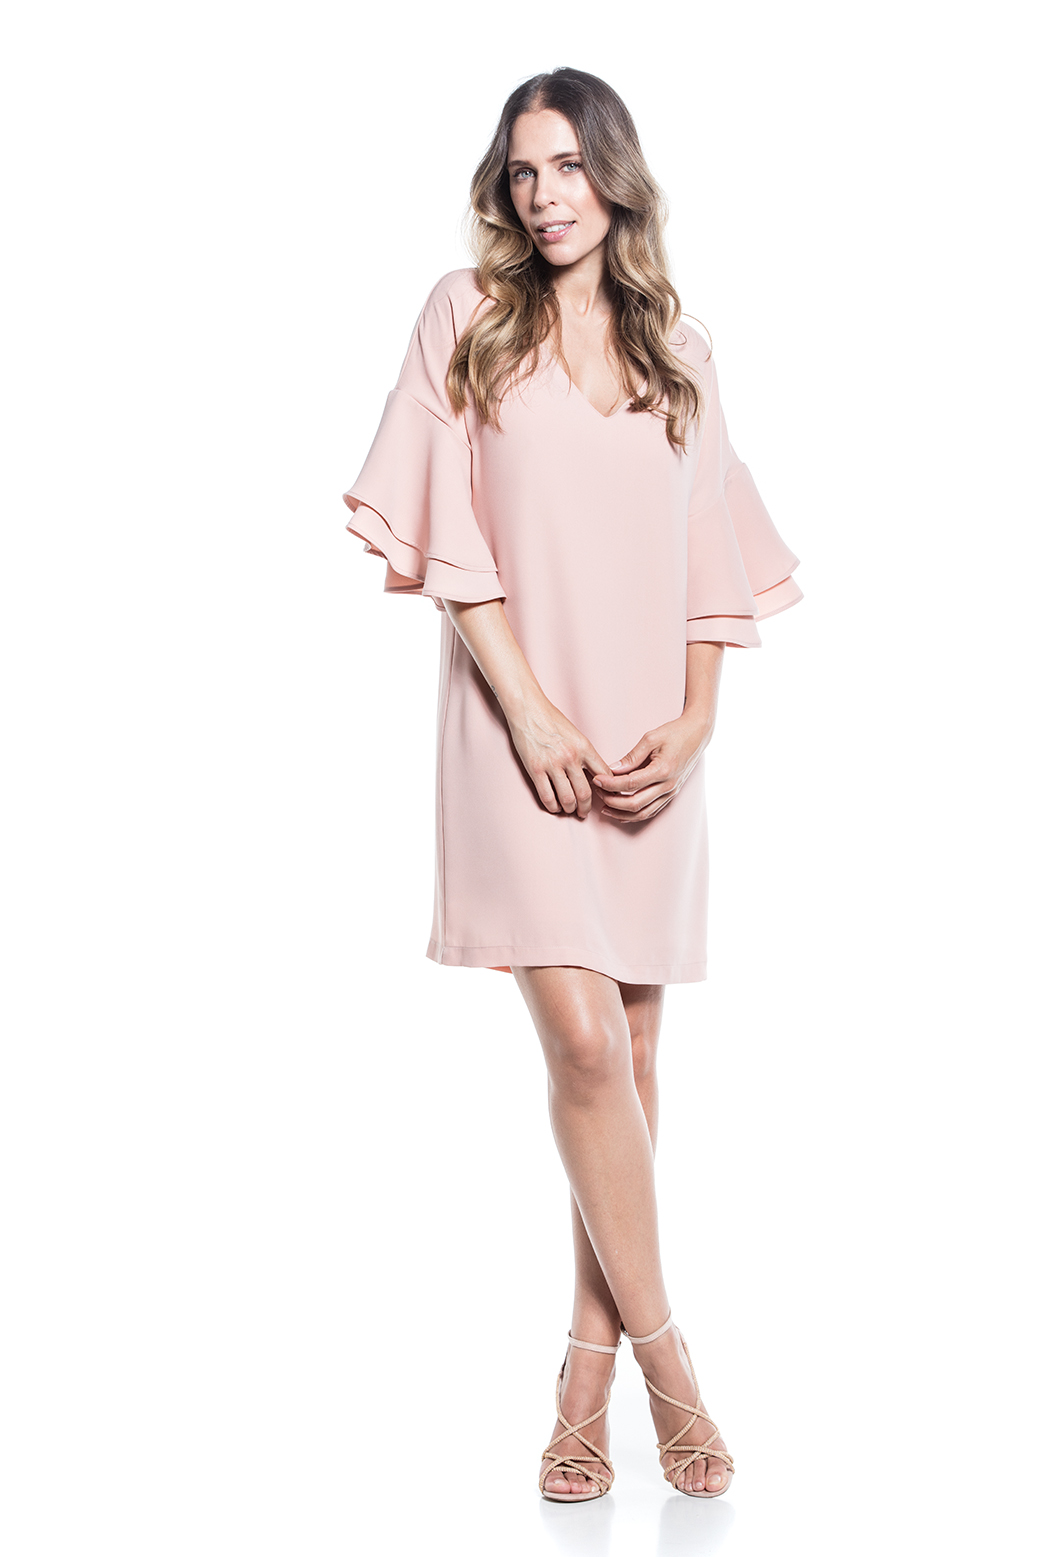 Fluid dress with frills on the sleeves